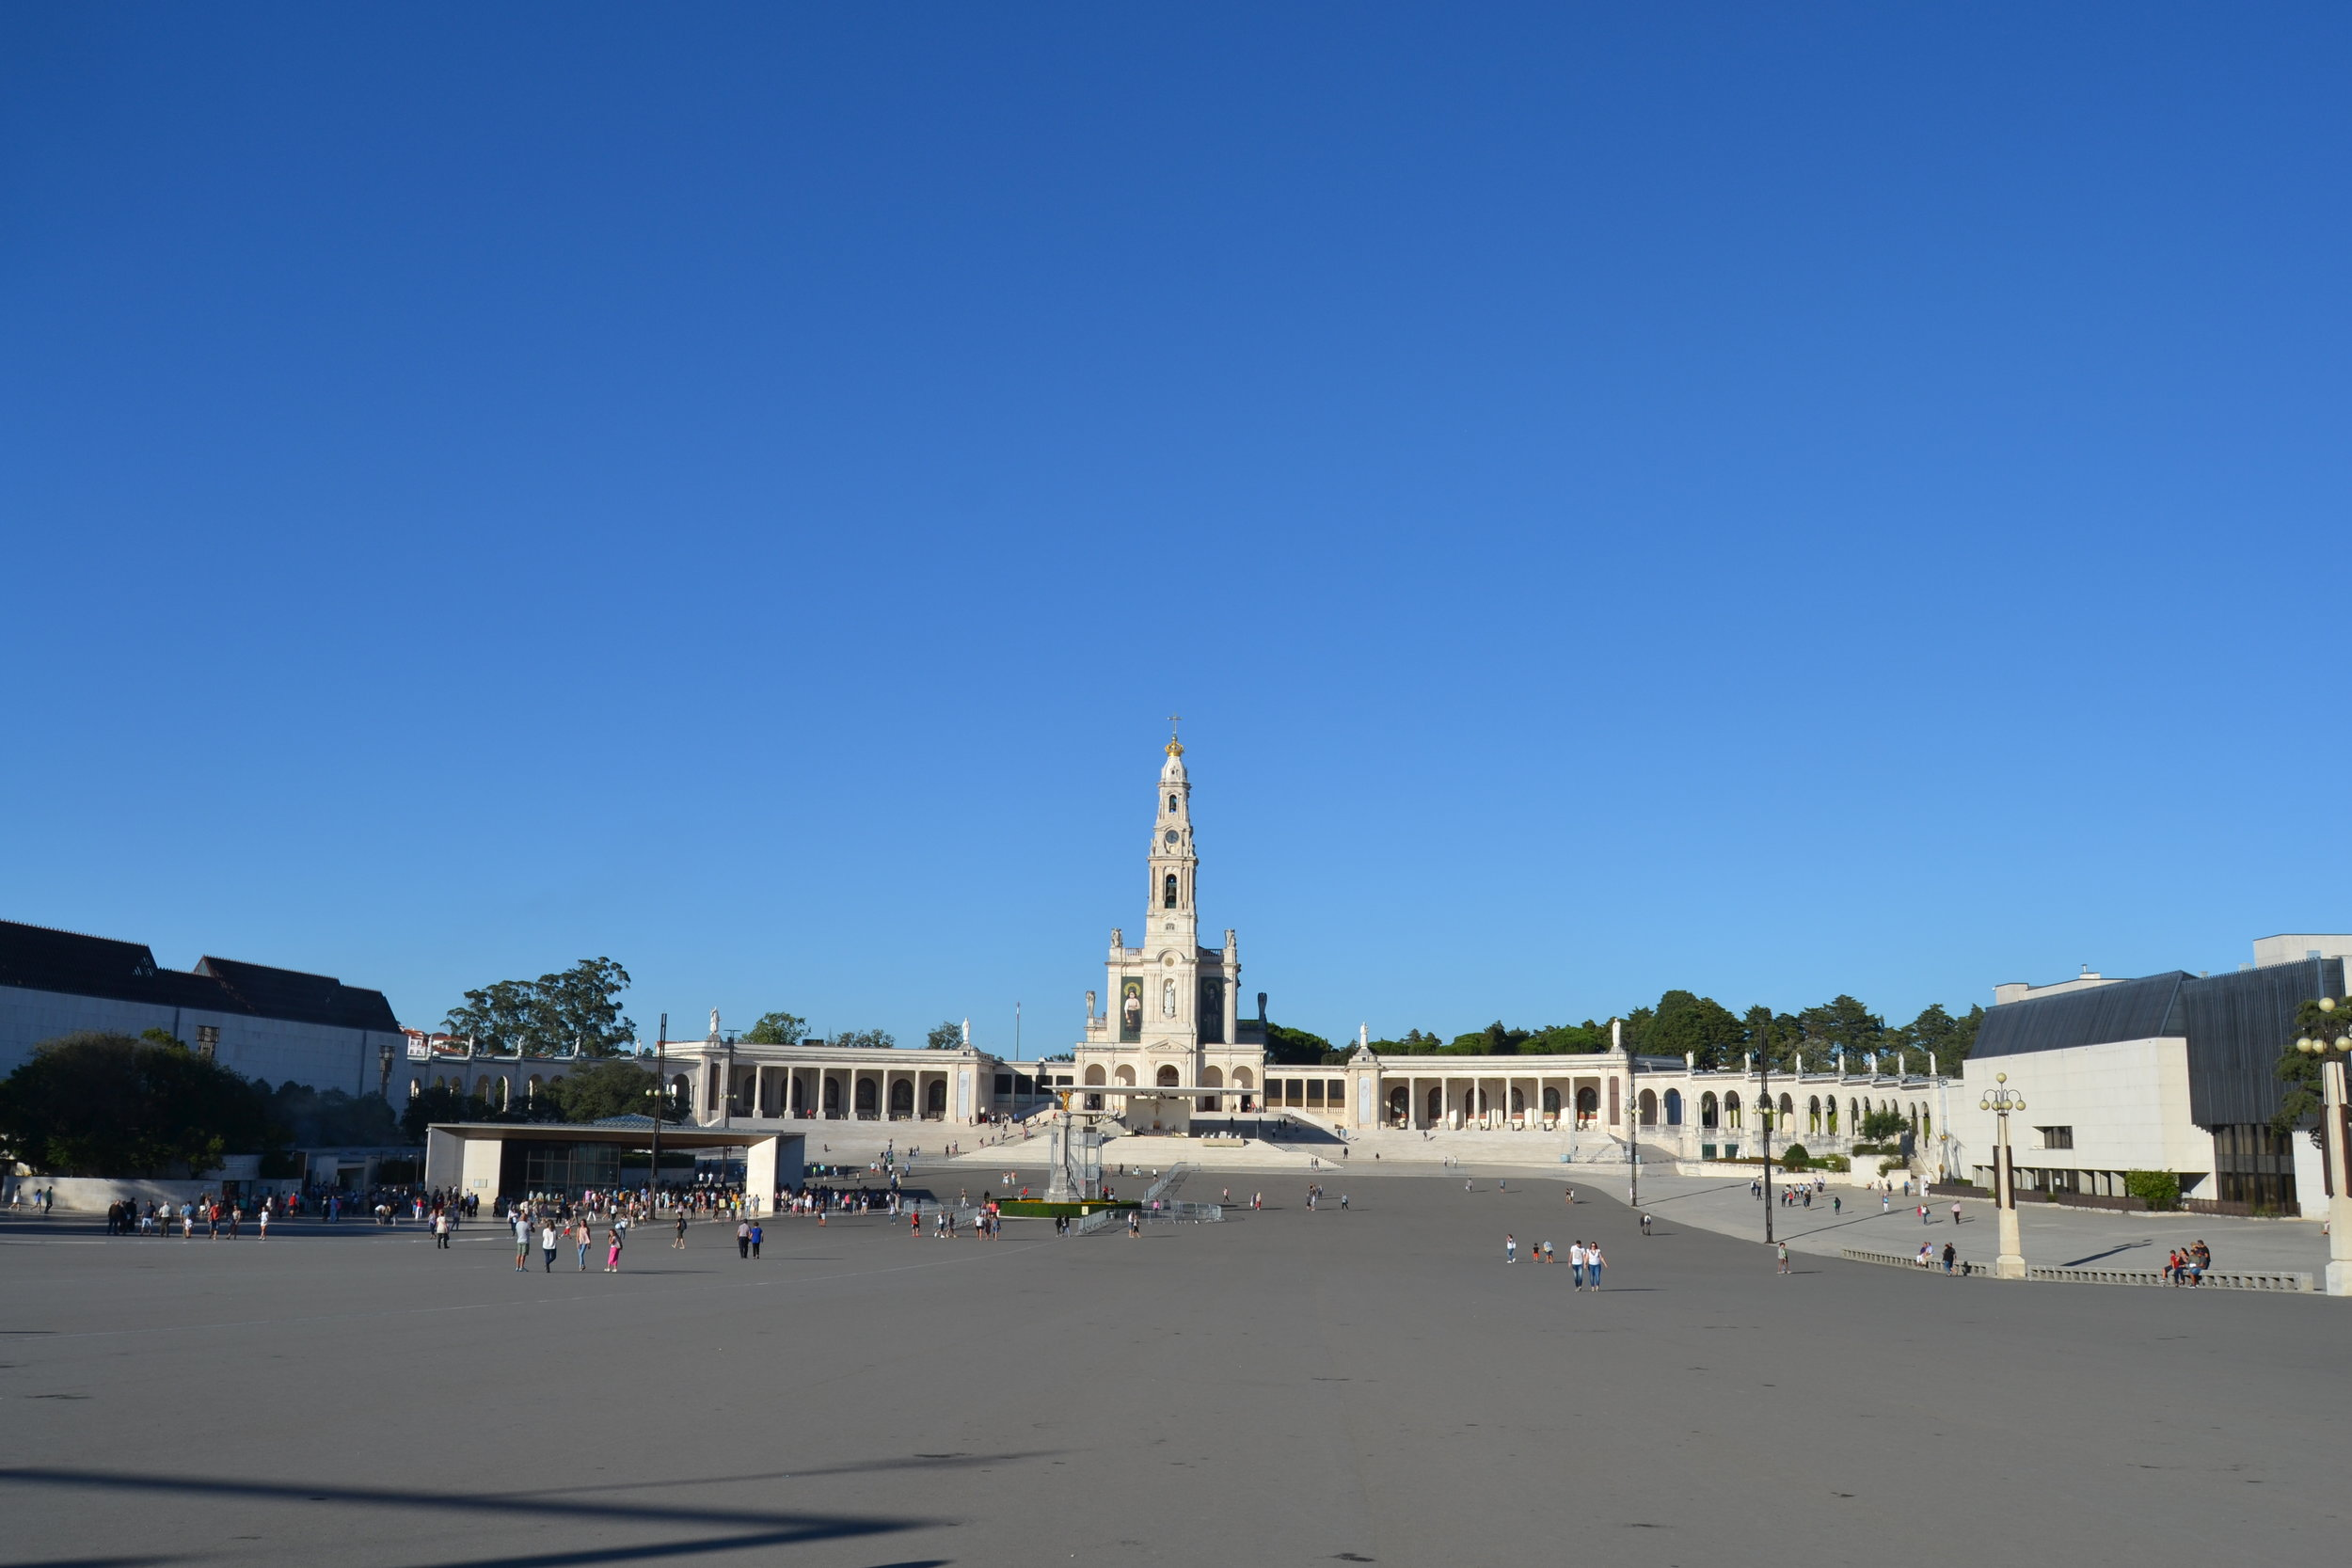 View of the Fatima pilgrimage site looking toward the basilica